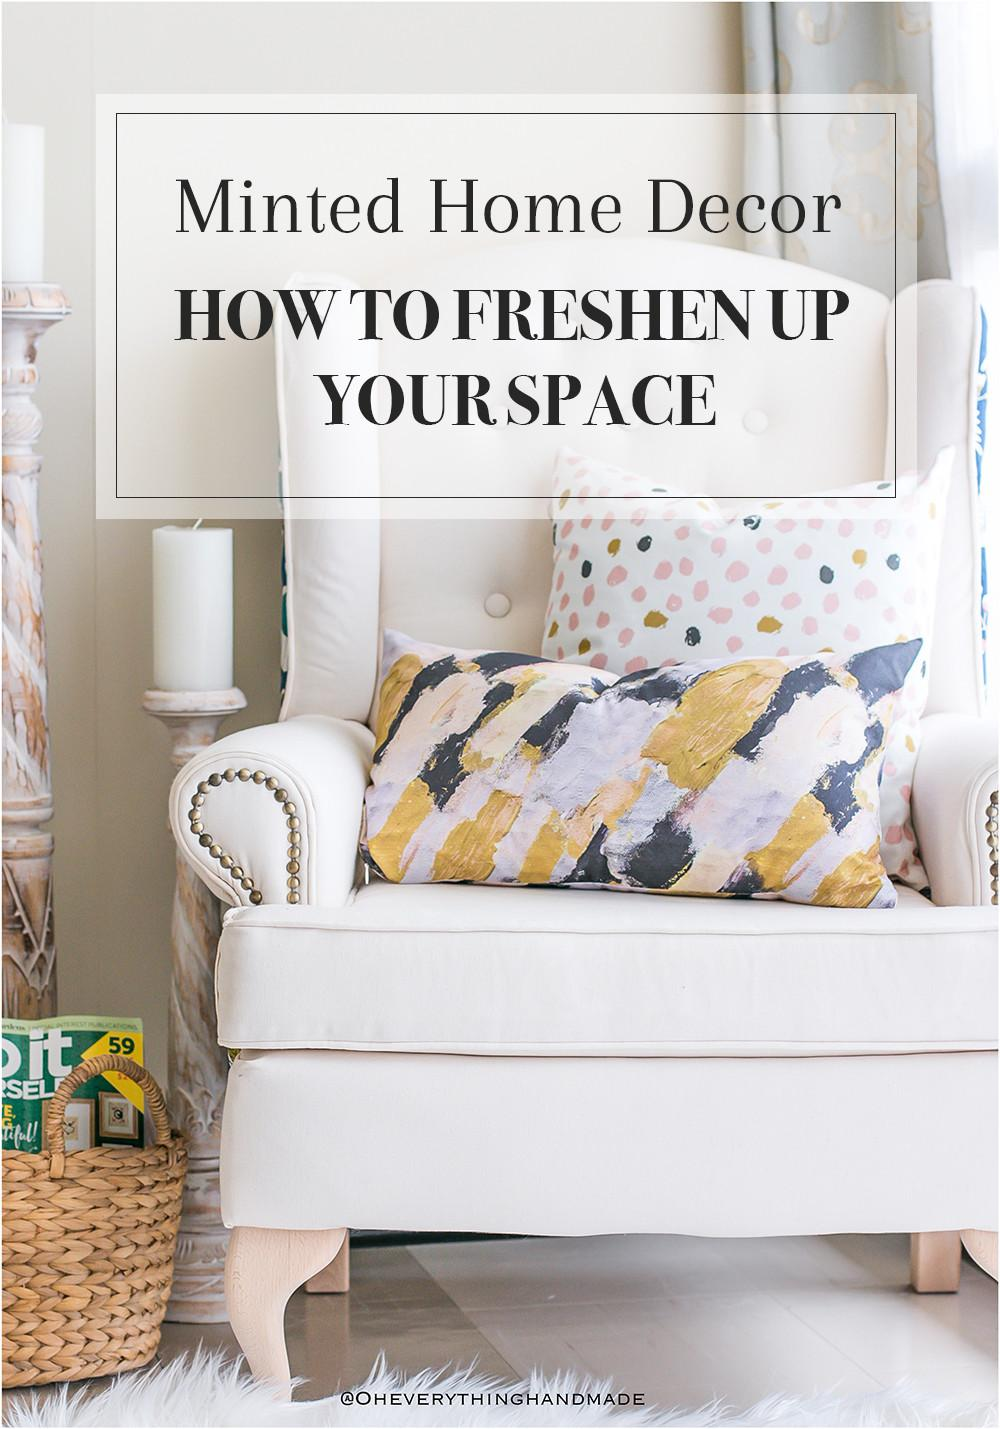 Minted Home Decor Freshen Your Space